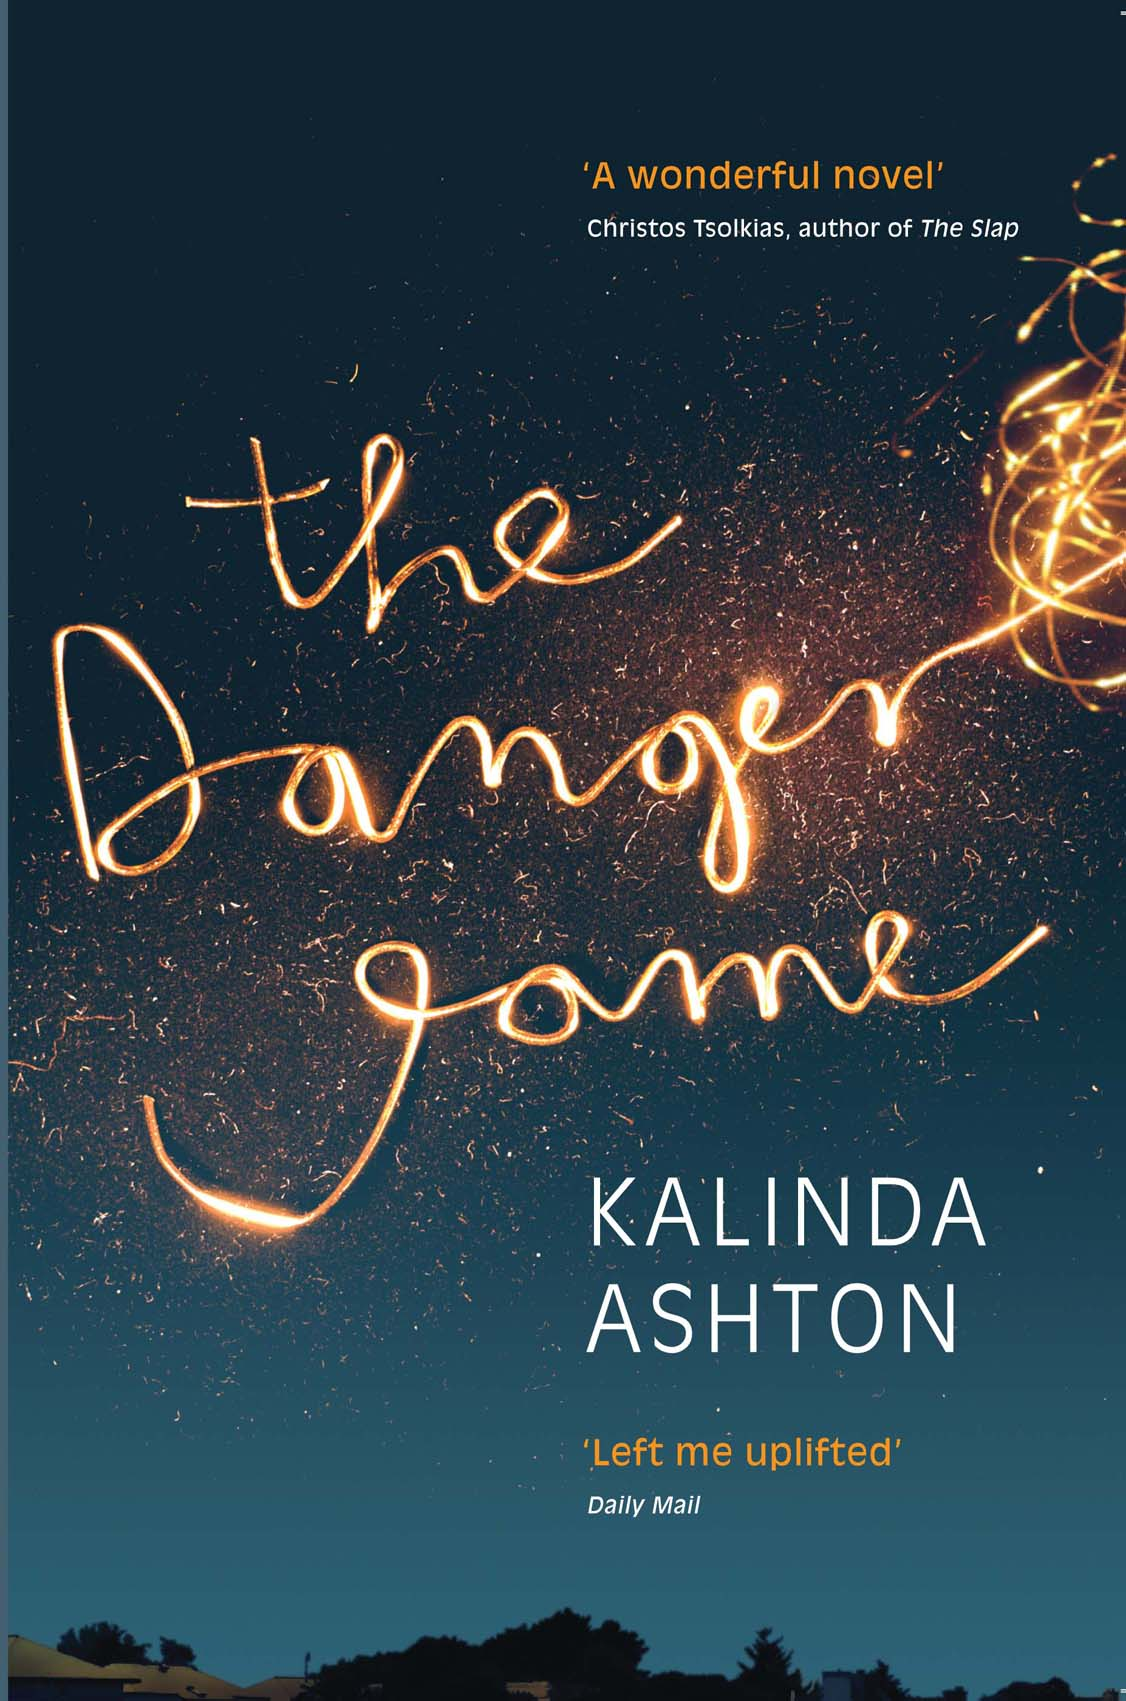 The latest UK cover of *The Danger Game*: 'I loved it straight up'.